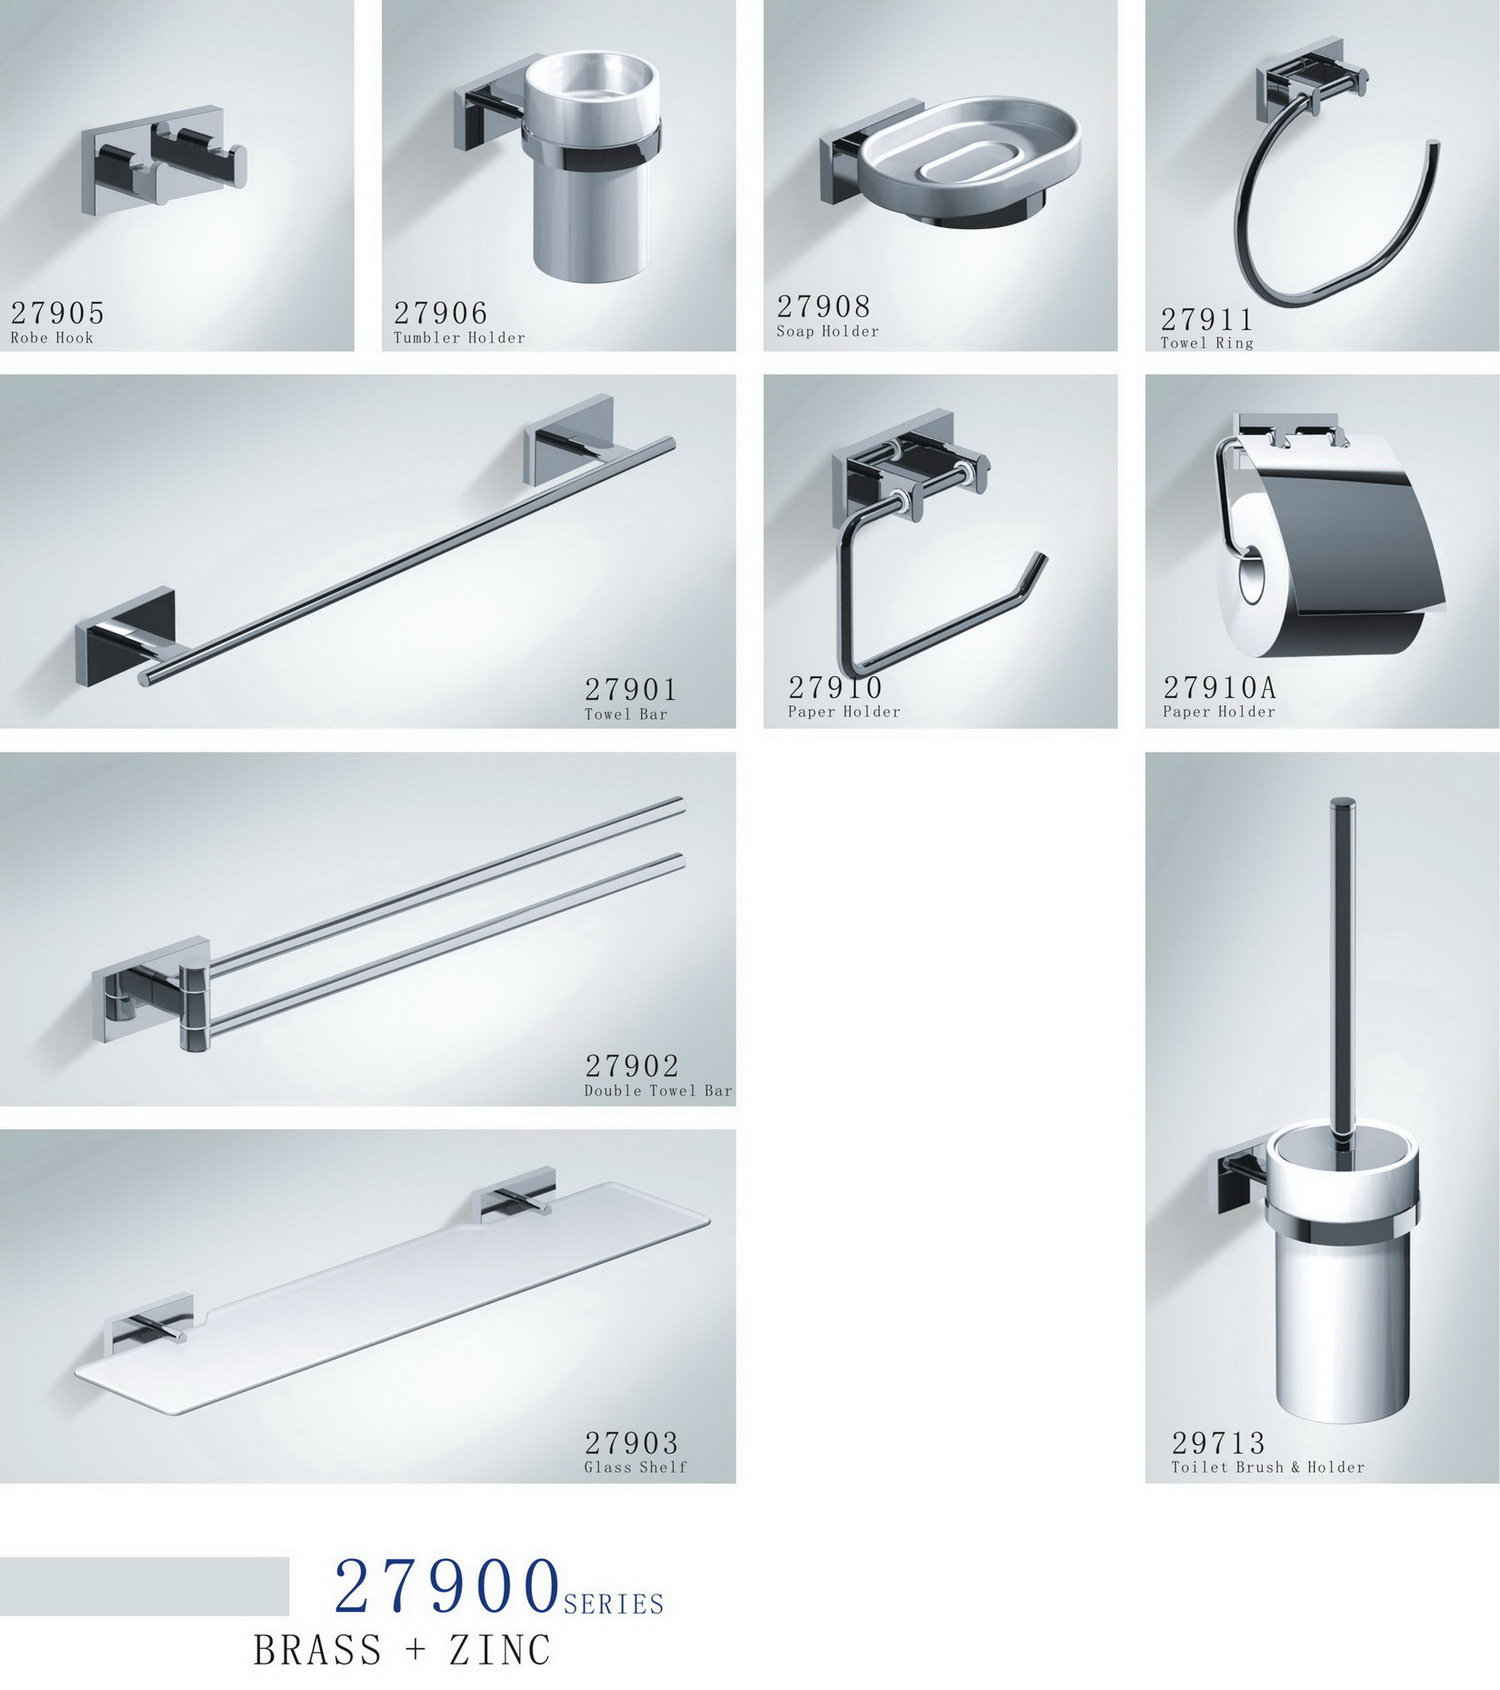 Bathroom Accessories 27900 Series Wenzhou Range Mova